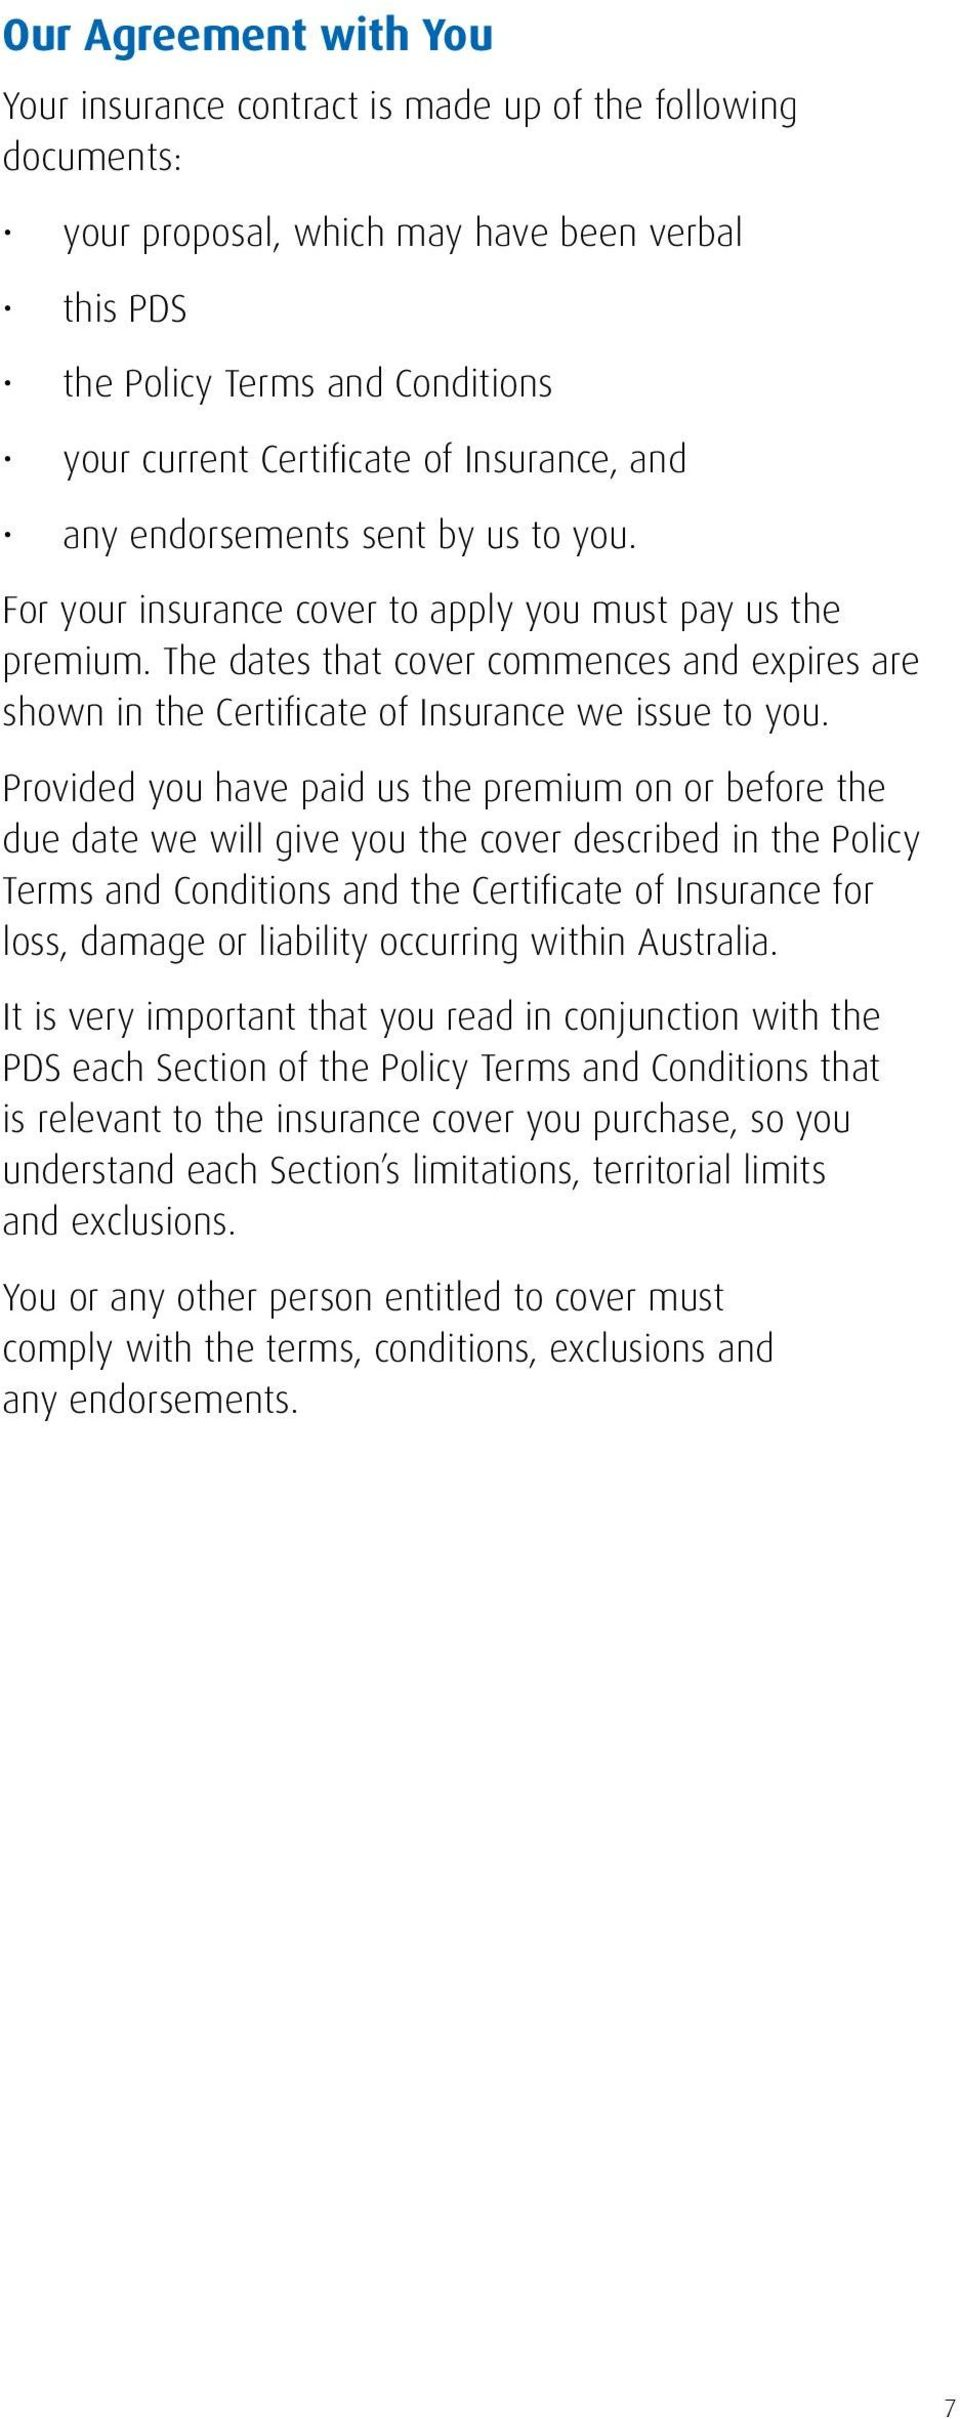 The dates that cover commences and expires are shown in the Certificate of Insurance we issue to you.